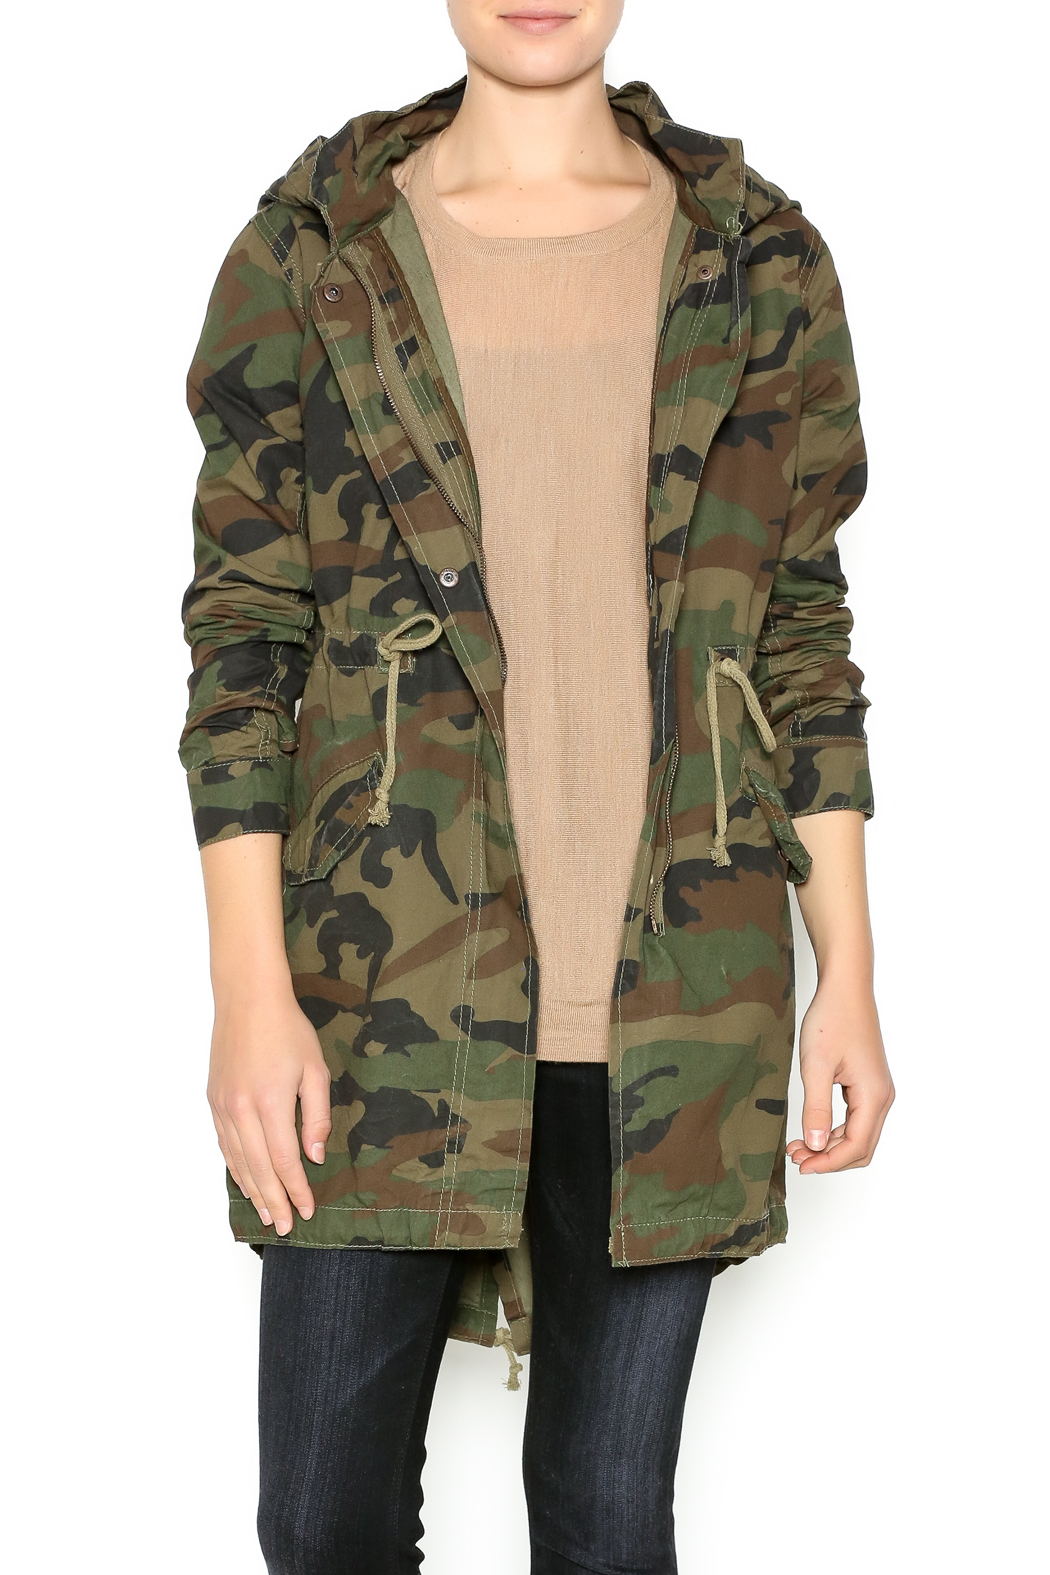 2a93c5589e6bf Soho Babe Camo Anorak Jacket from Long Island by EPIC Stores ...